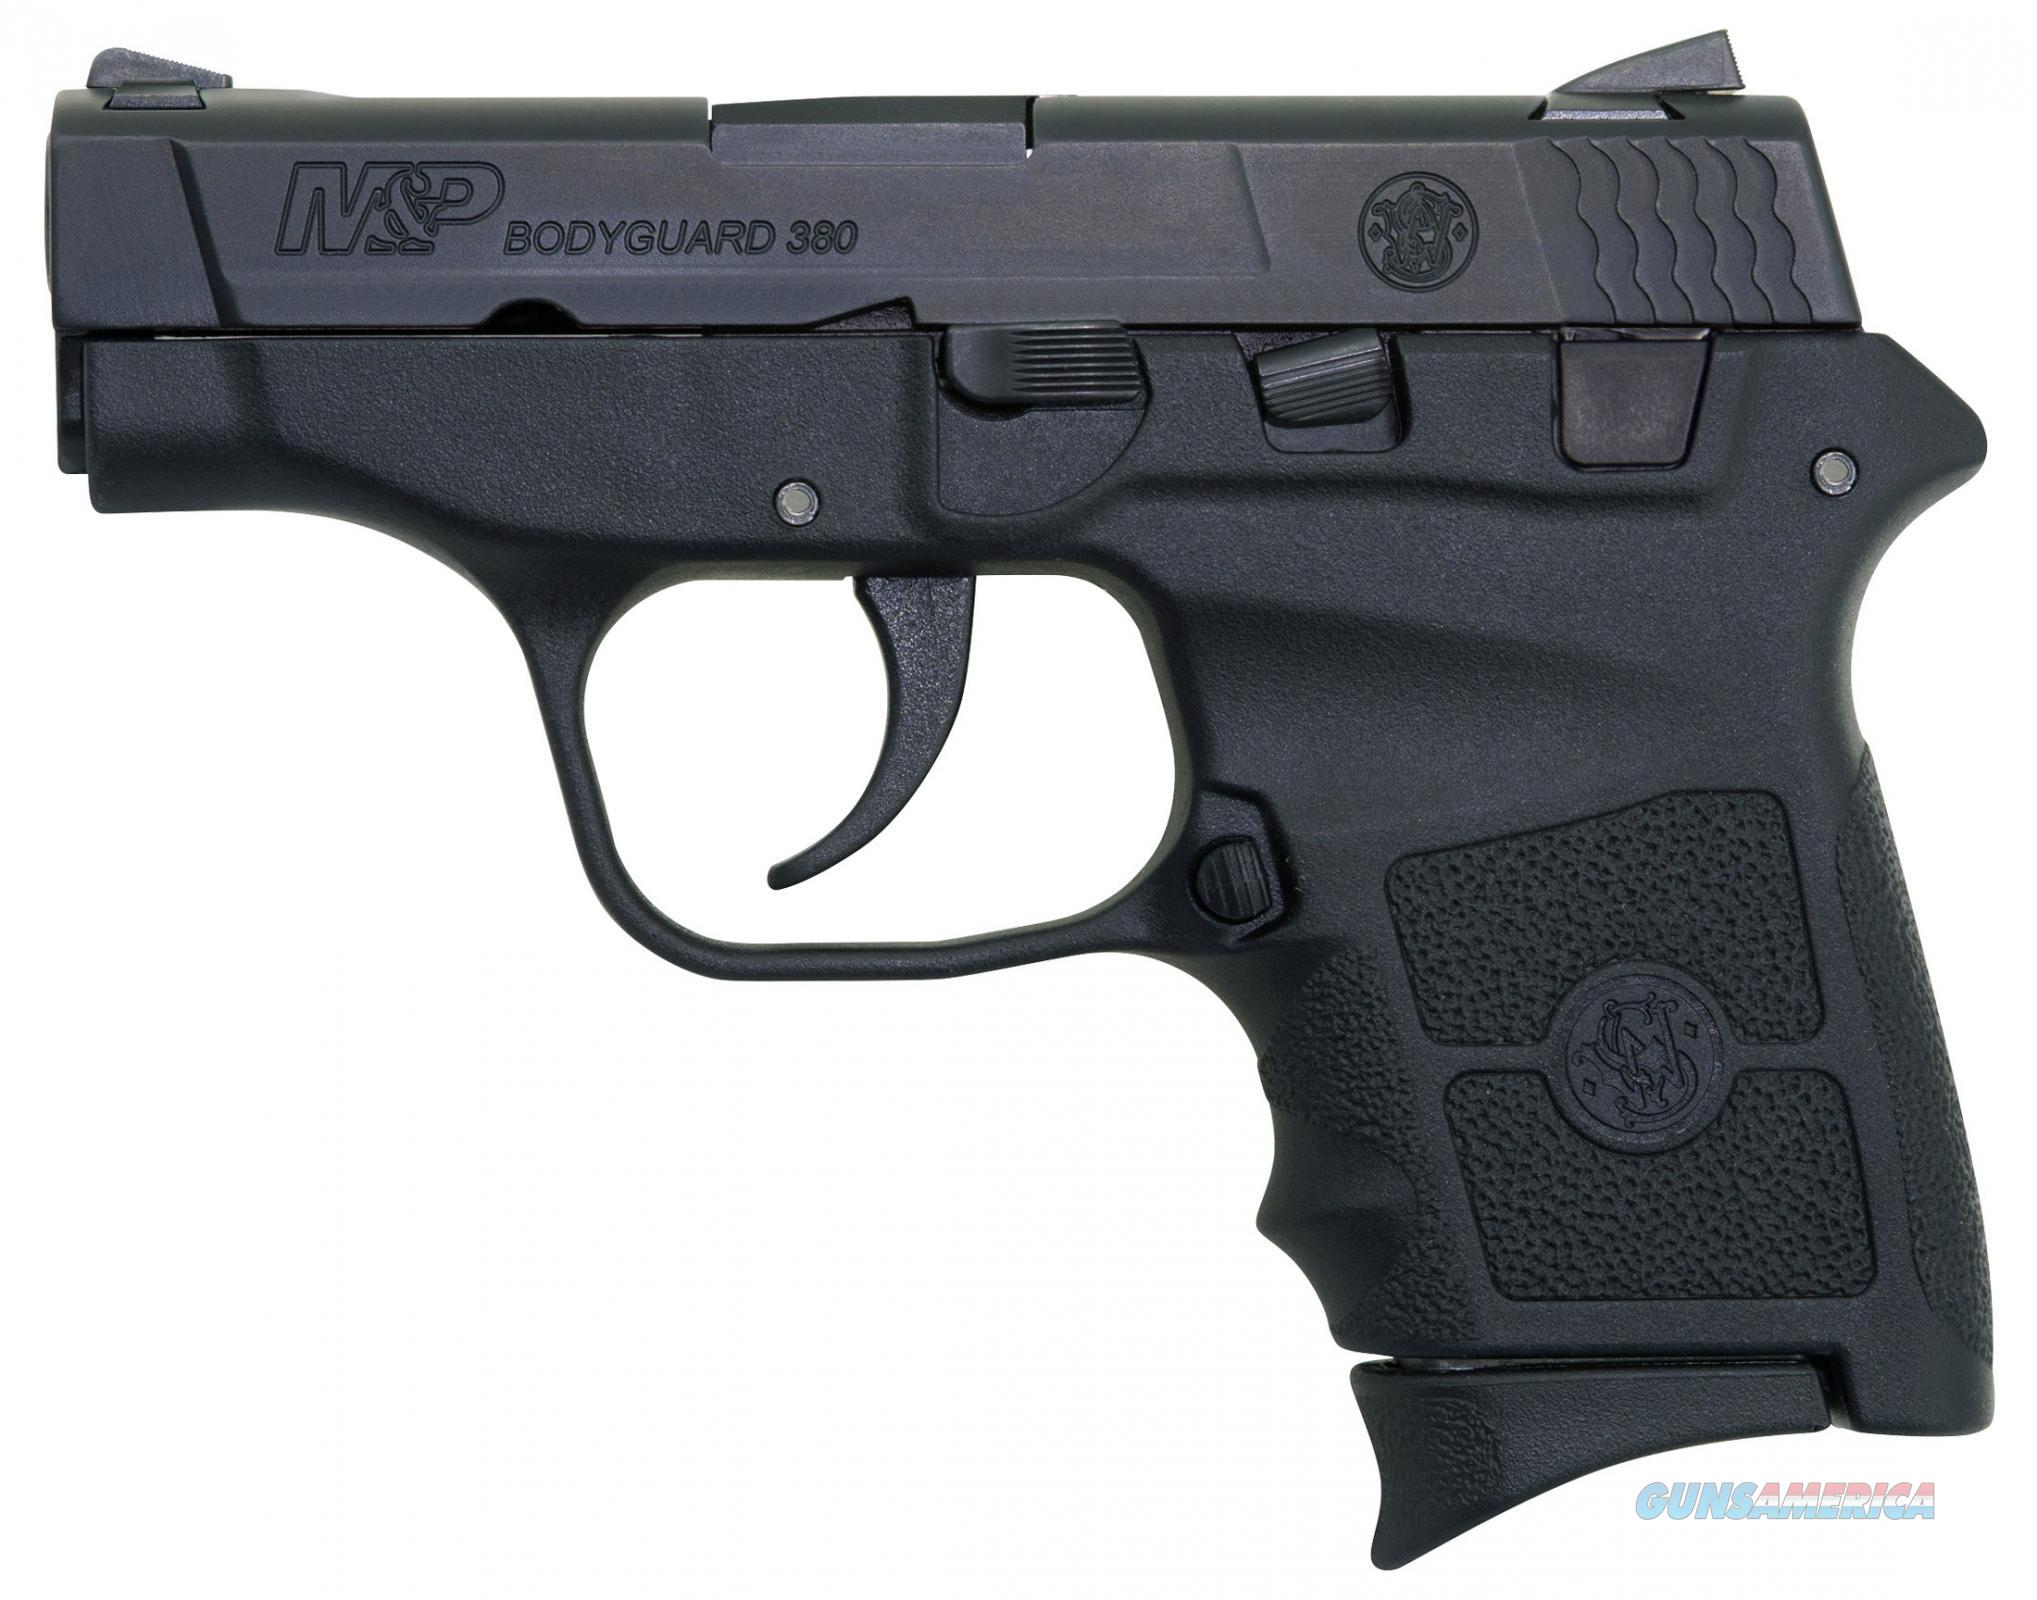 Smith & Wesson Bodyguard 380, No Thumb Safety - New in Box  Guns > Pistols > Smith & Wesson Pistols - Autos > Polymer Frame